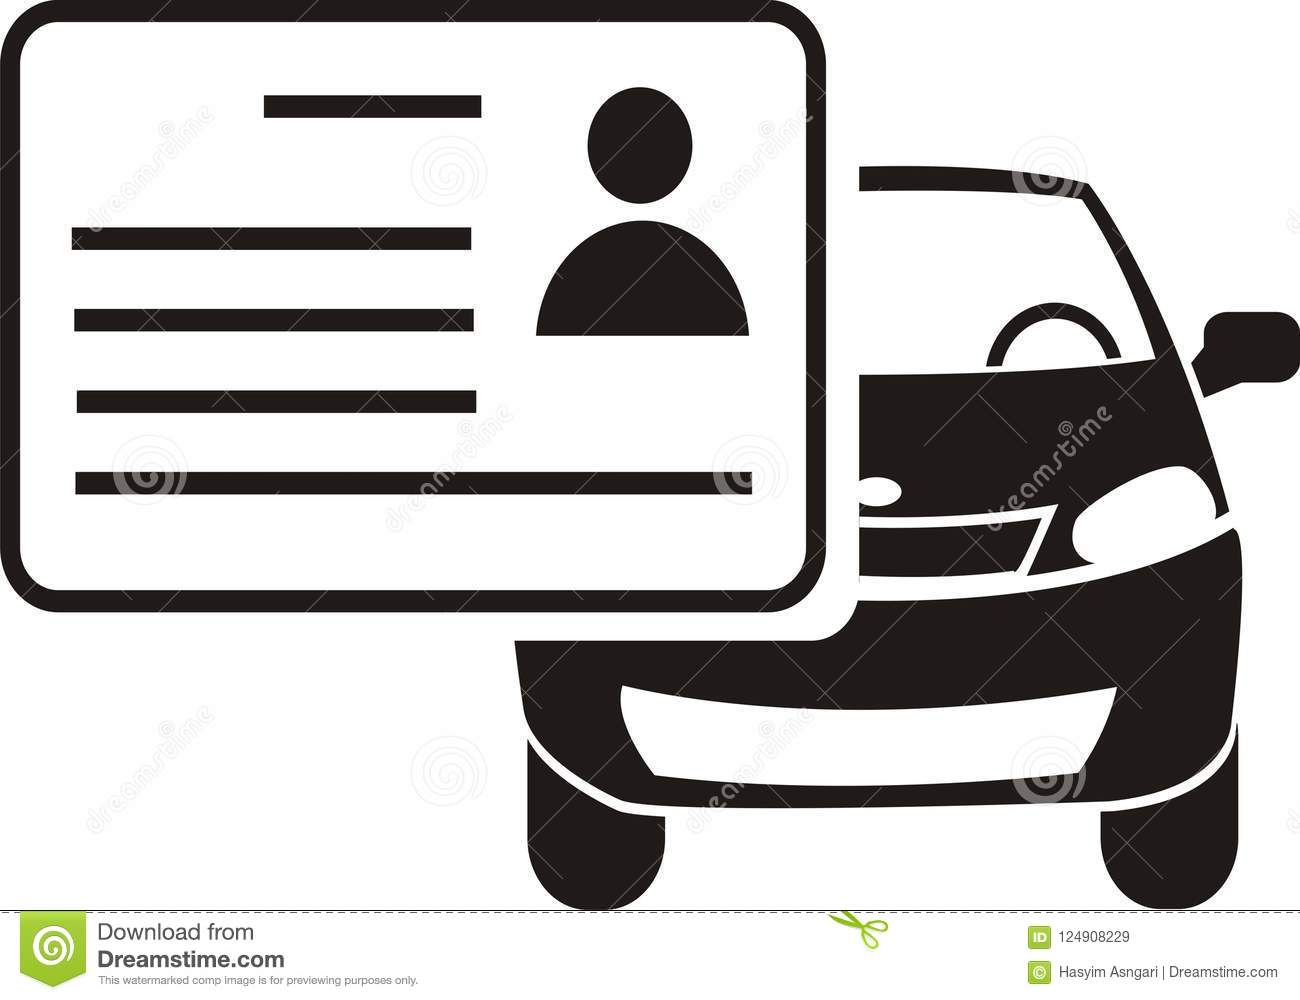 Cost Less Auto >> Driving License Icon Vector Stock Illustration - Illustration of driving, card: 124908229